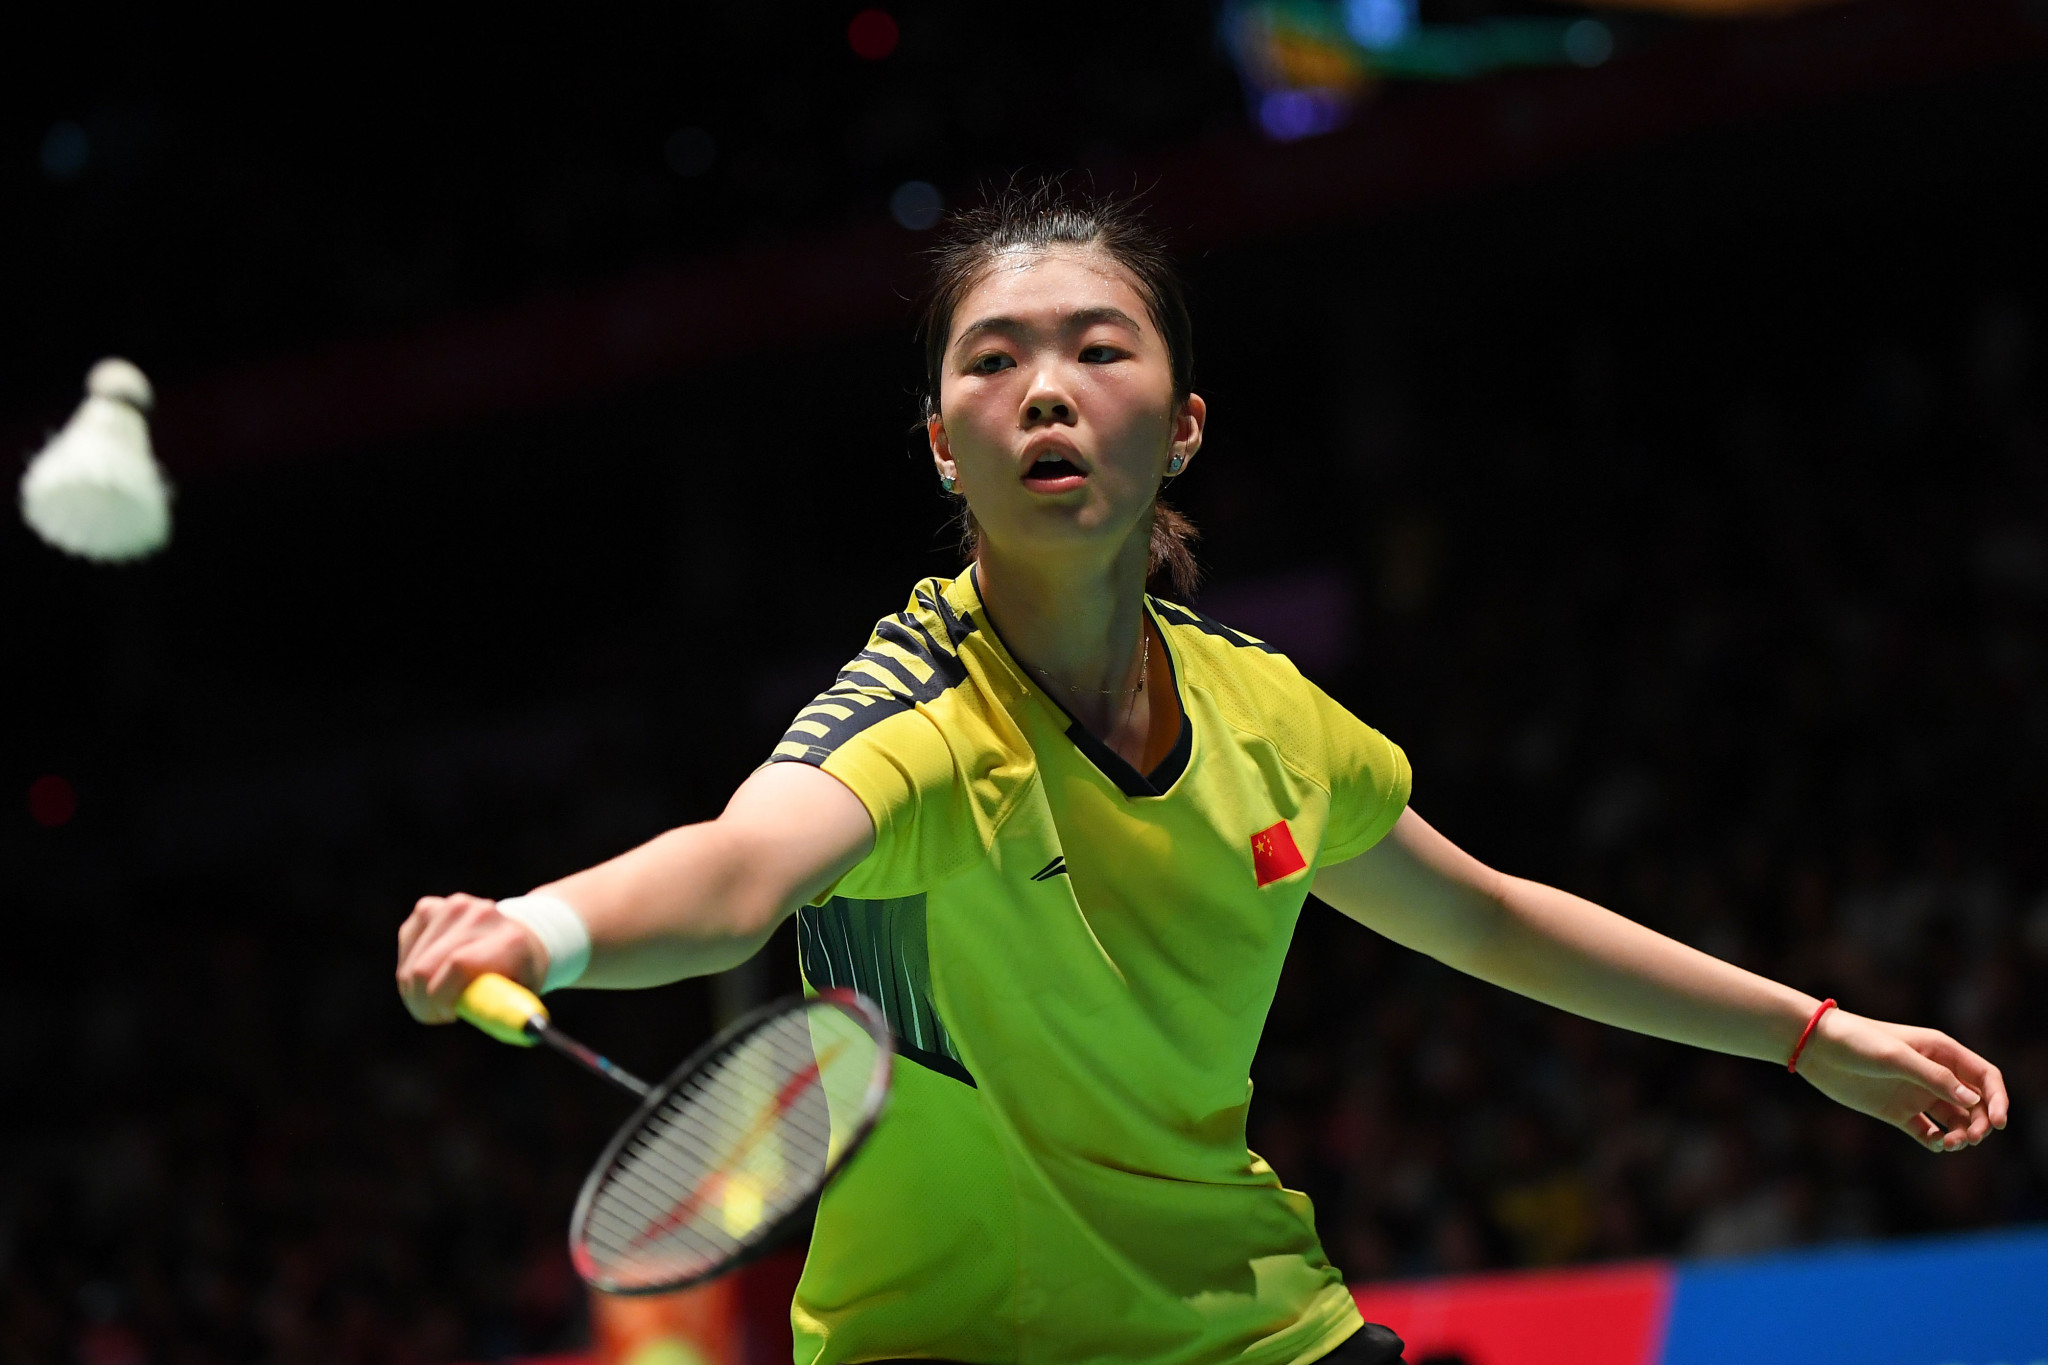 China's Gao Fangjie retired injured from her match against Spain's Carolina Marin ©Getty Images